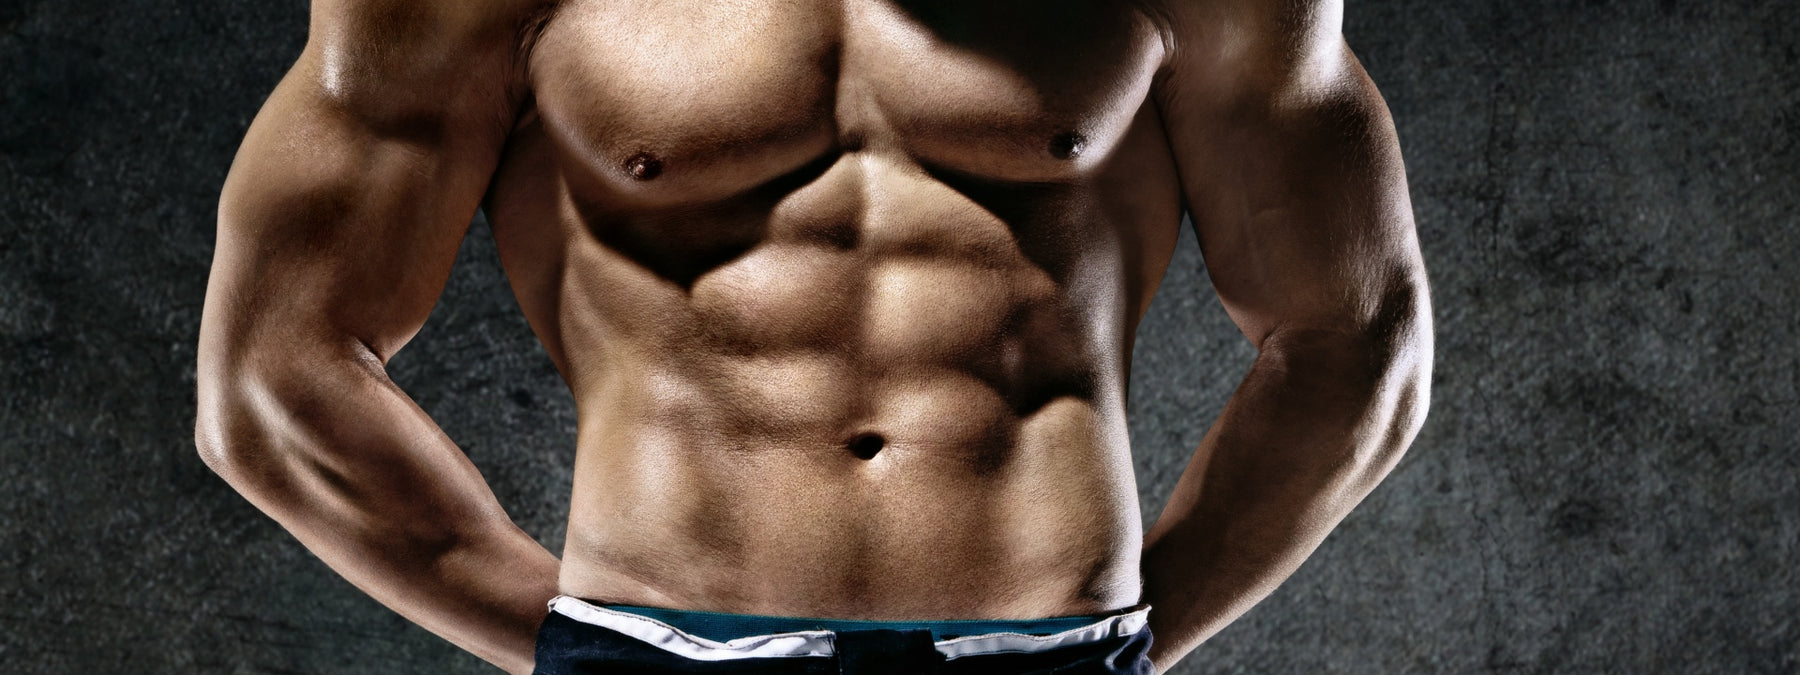 5 Tips to Gain Muscle Mass at an Optimal Rate